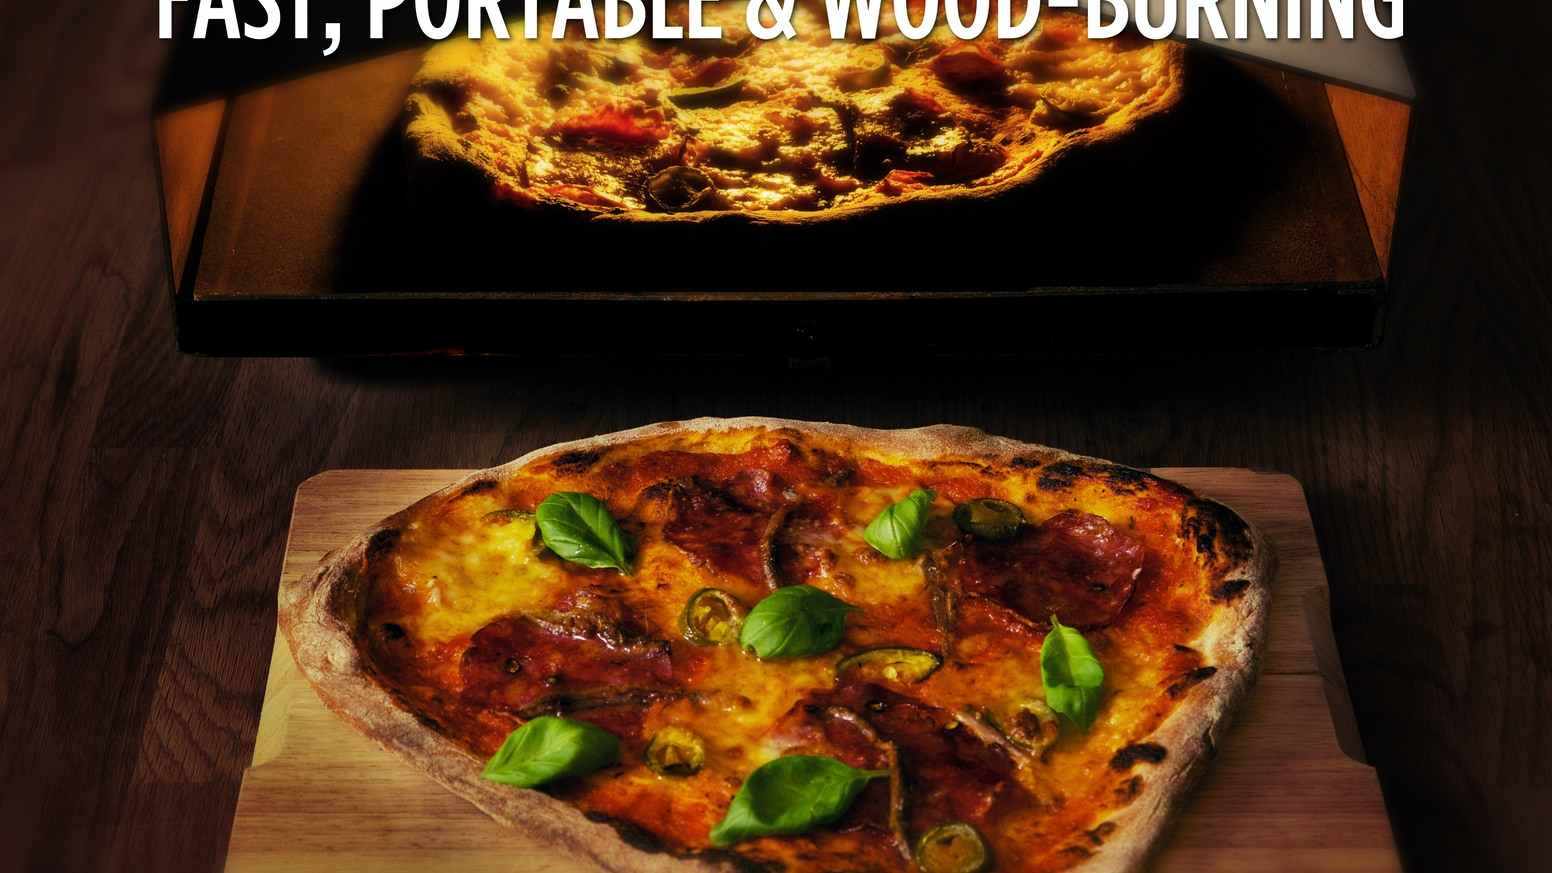 Uuni A Small Fast Amp Affordable Wood Fired Pizza Oven By